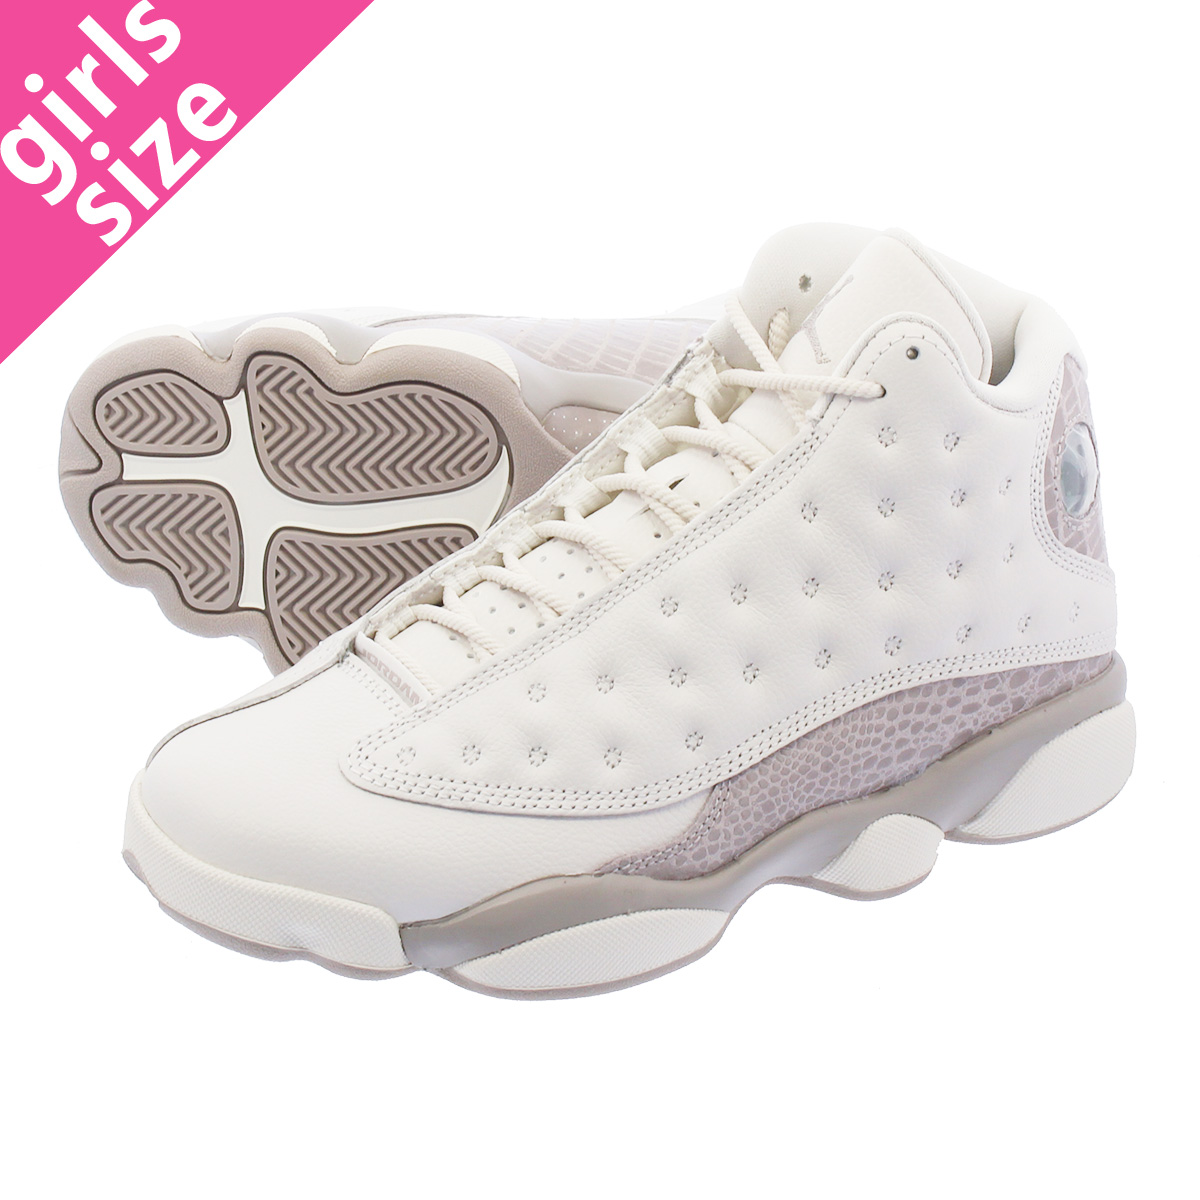 5a0f5d6f76b1d1 NIKE WMNS AIR JORDAN 13 RETRO Nike women Air Jordan 13 nostalgic PHANTOM MOON  PARTICLE aq1757-004